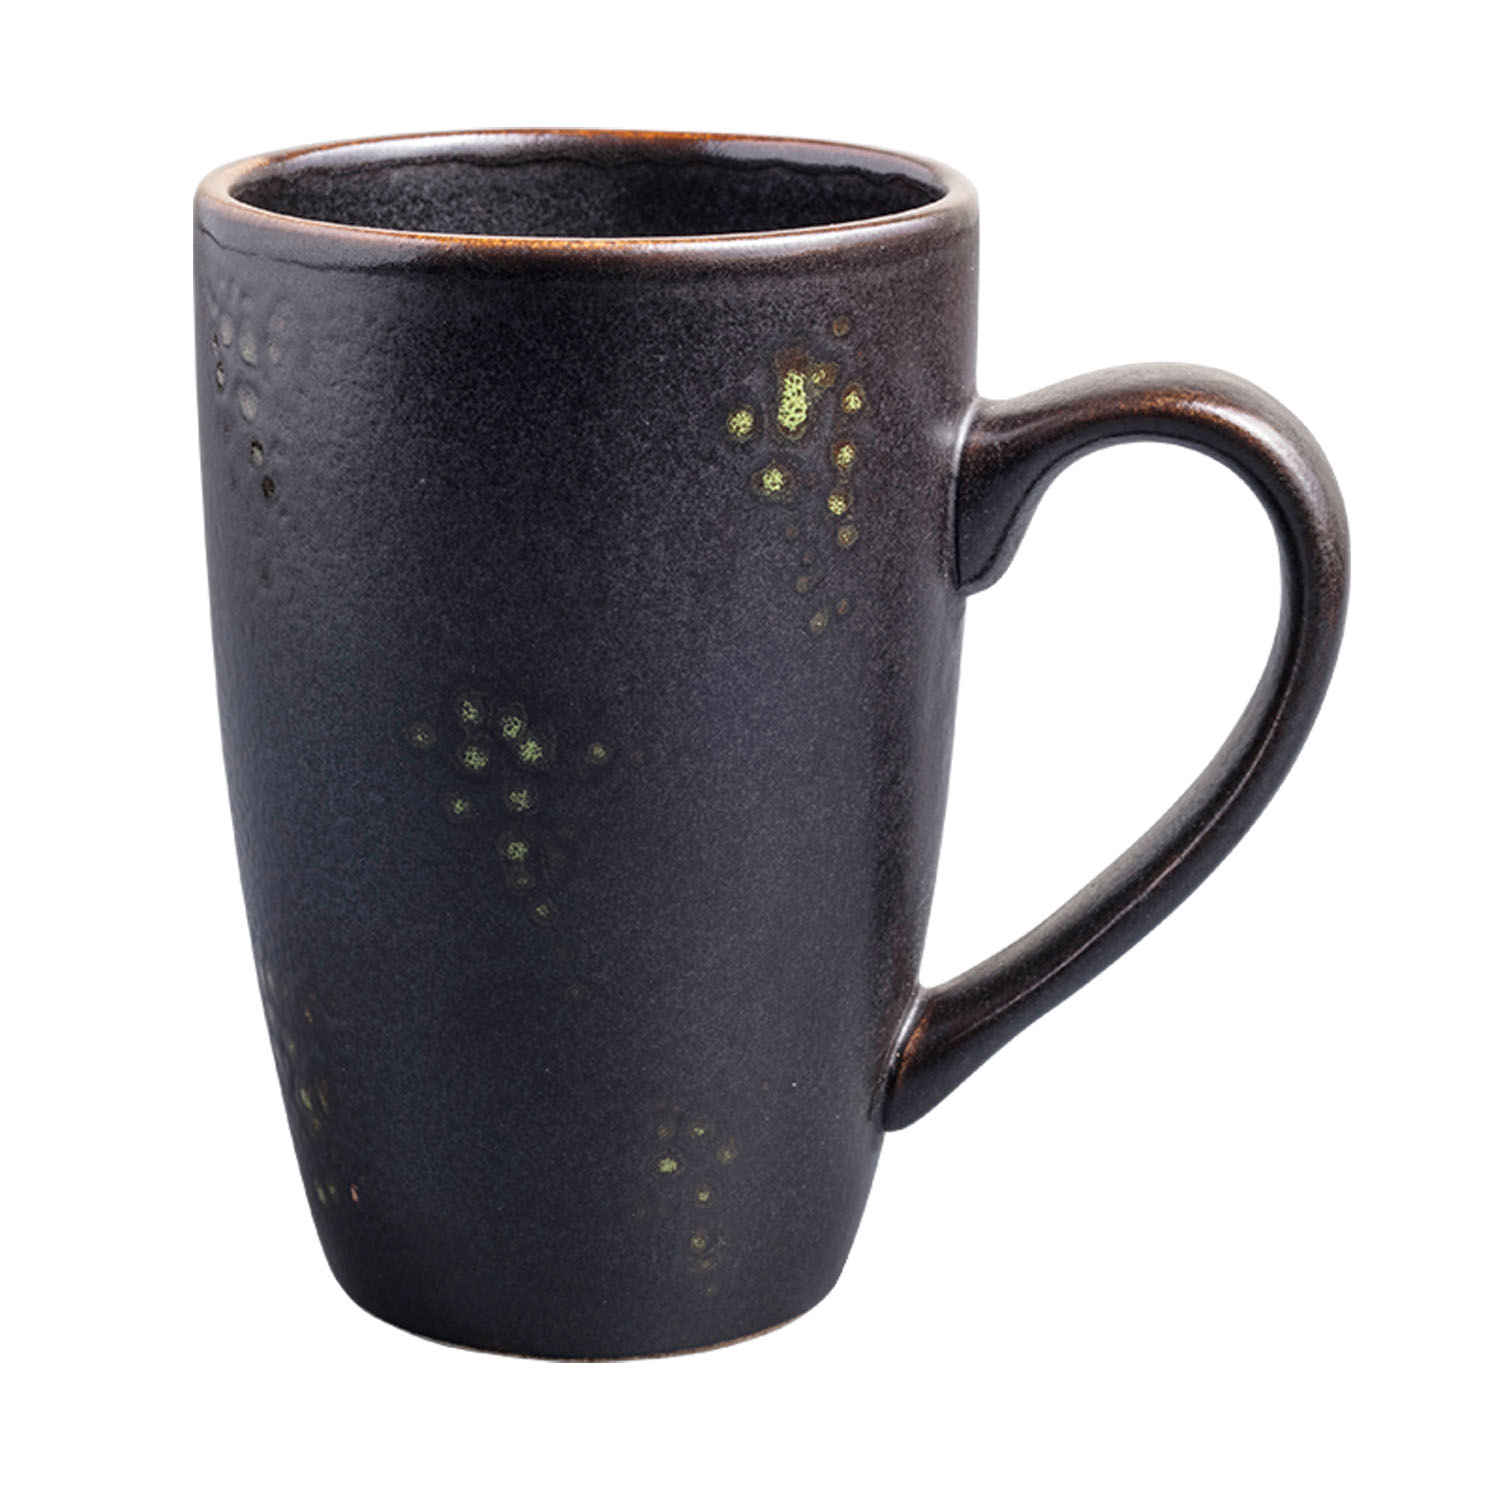 Vertex China LMJ-178 mug, china